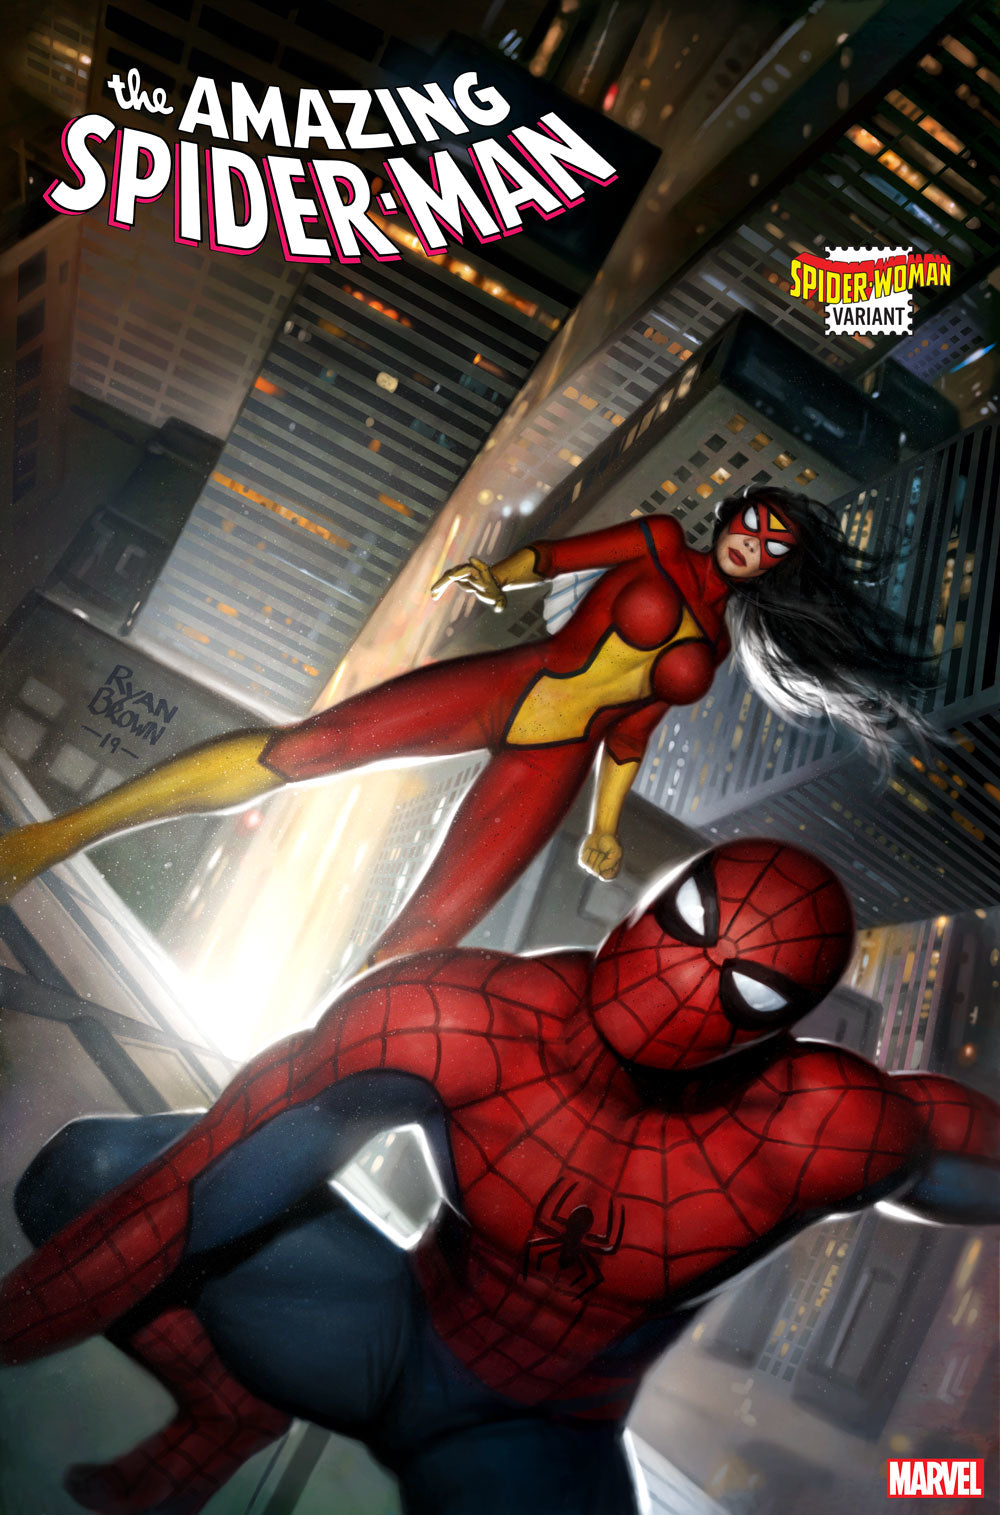 Amazing Spider-Man #41  Garbett Spider-Woman Var 2099